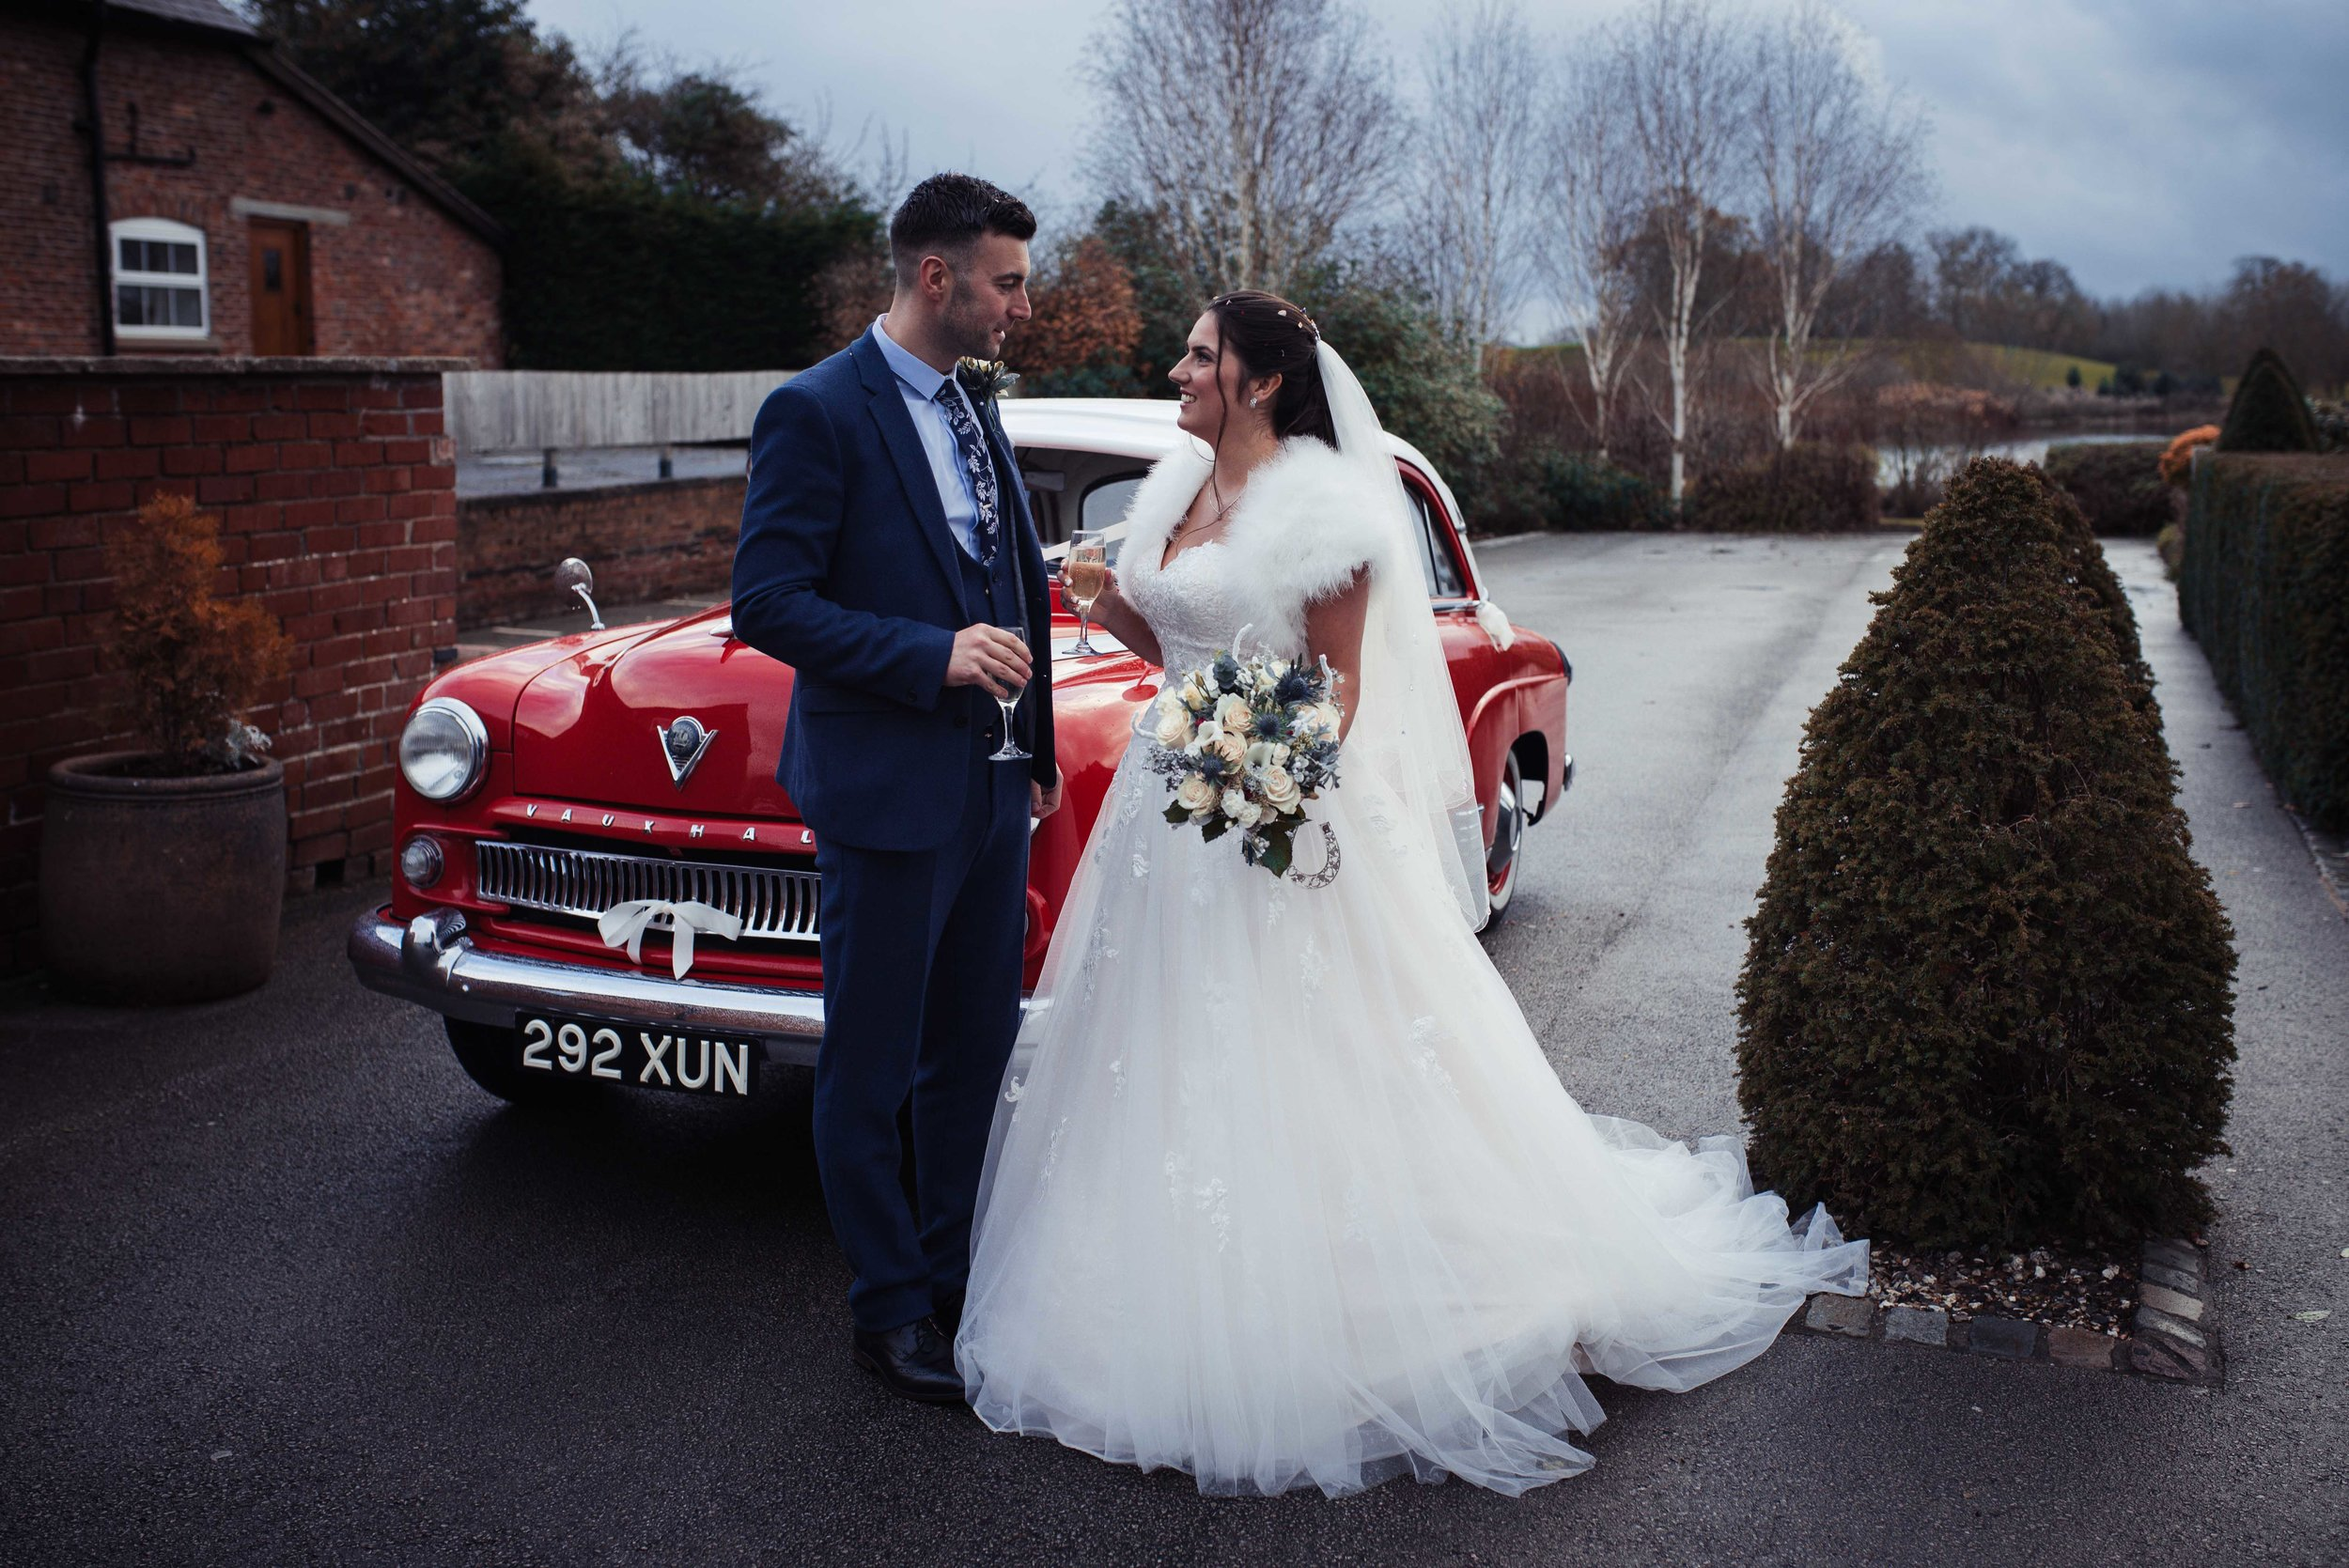 The bride and groom stand in front of their red wedding car with a glass of fizz